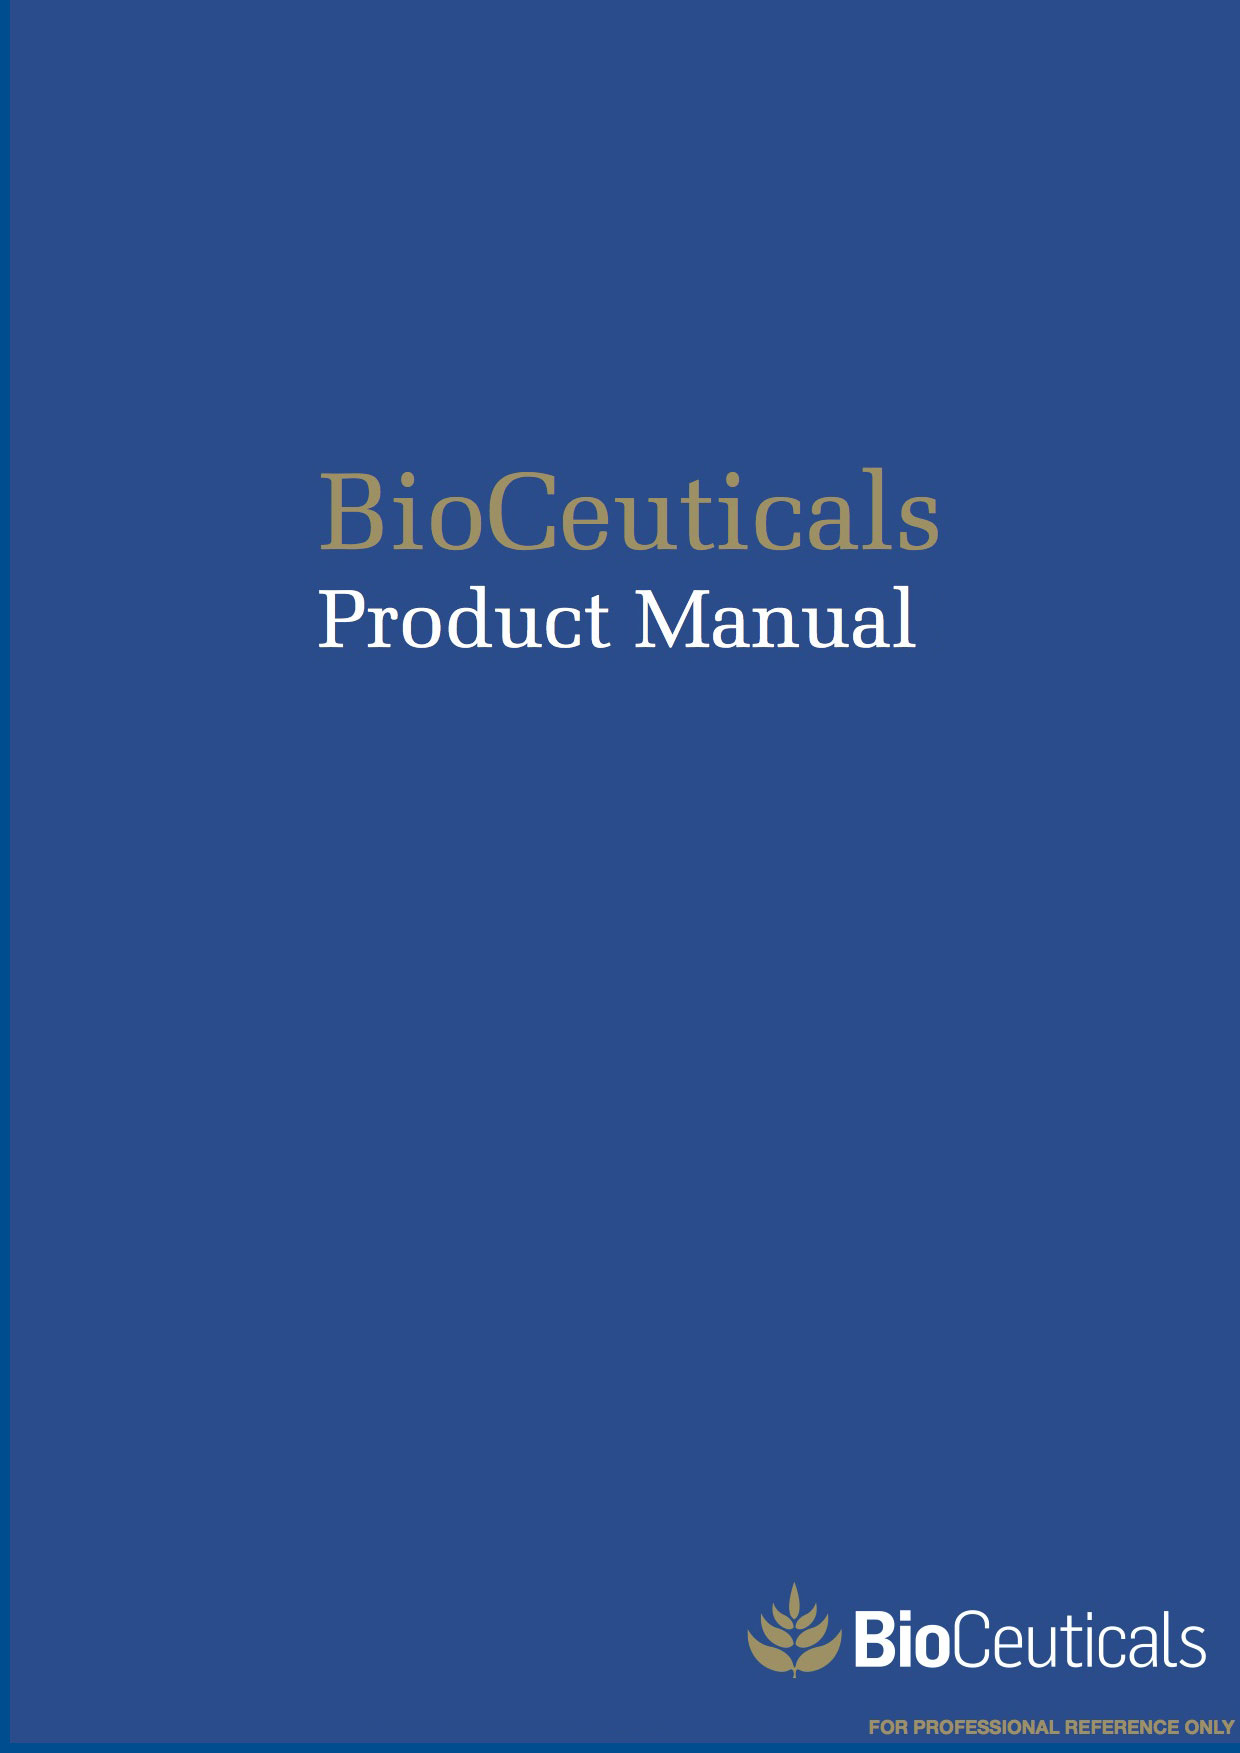 BioCeuticals Product Manual 2014